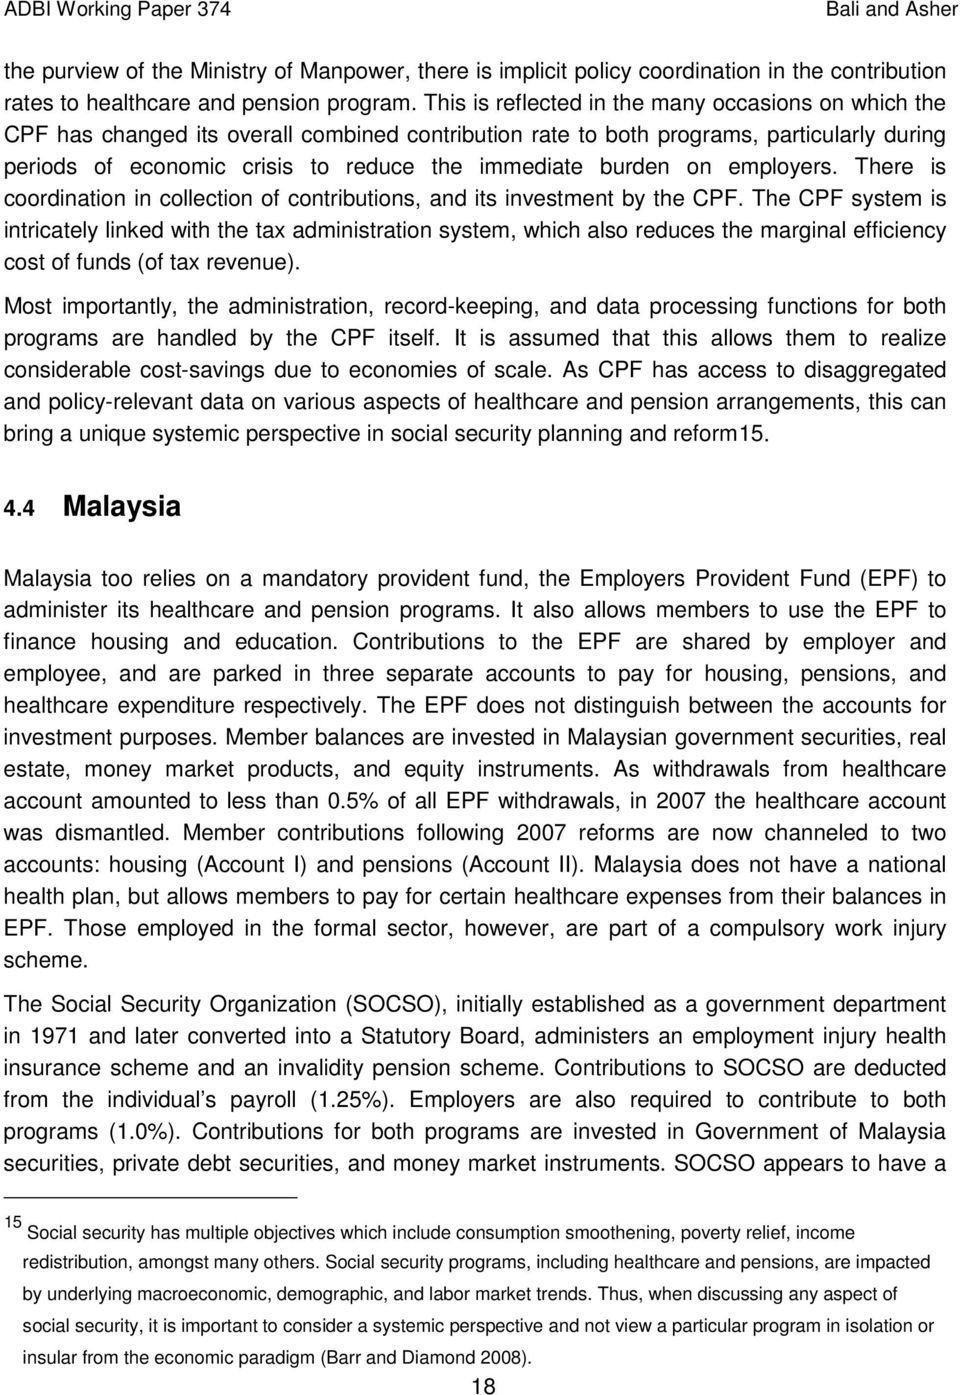 burden on employers. There is coordination in collection of contributions, and its investment by the CPF.